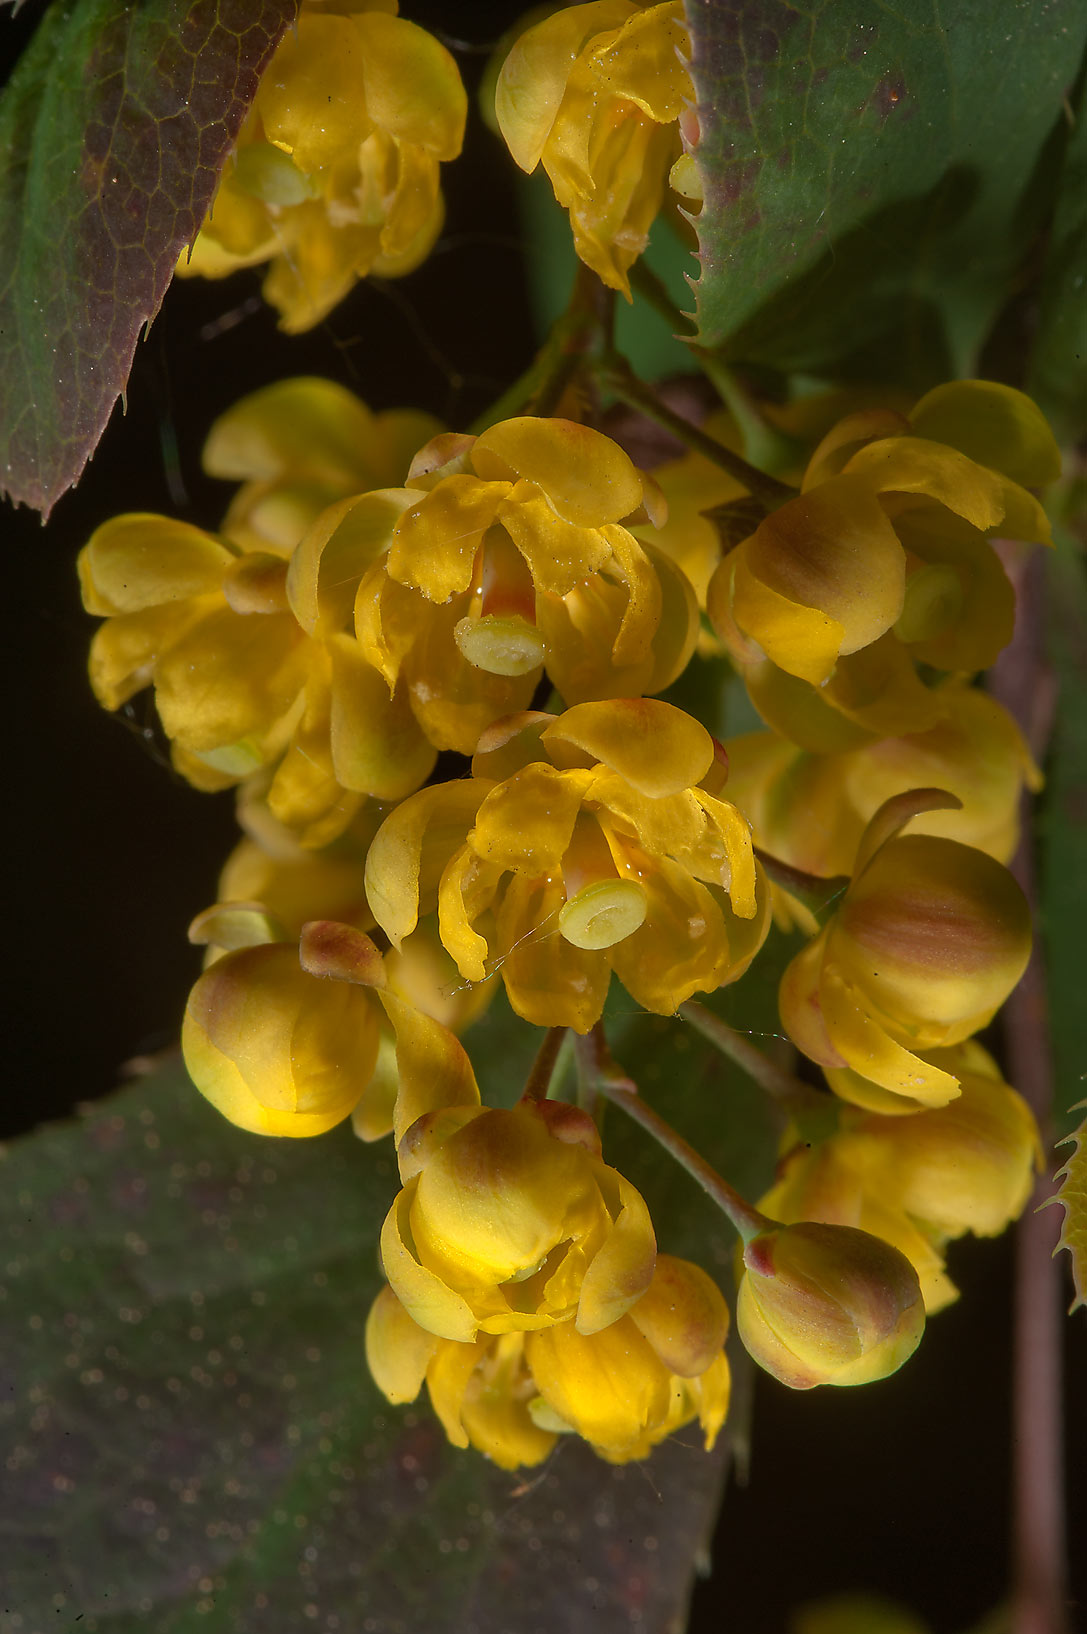 Yellow flowers of berberry. Pushkin (former Tsarsoe Selo) near St.Petersburg, Russia